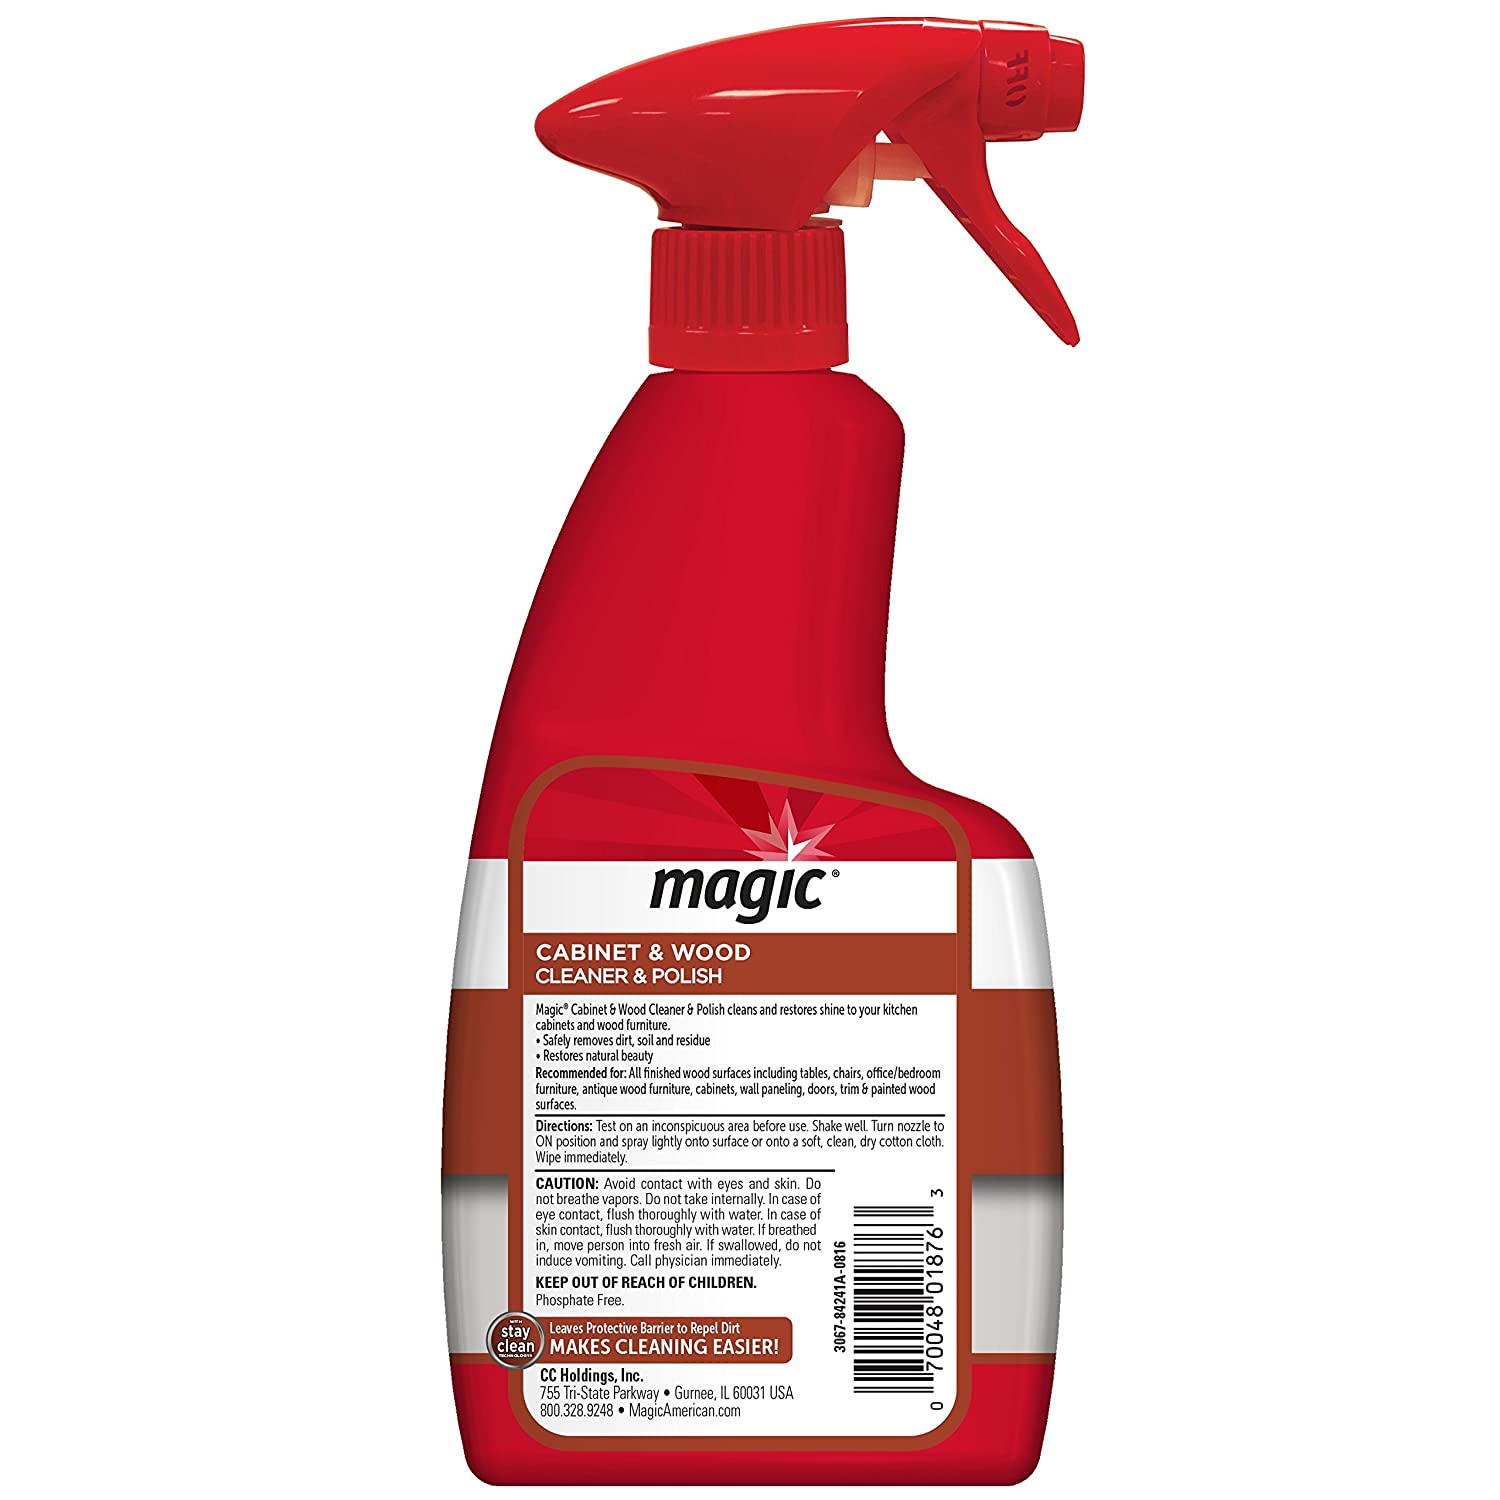 Amazon.com: Magic Wood Cleaner and Polish - 14 Fluid Ounce ...